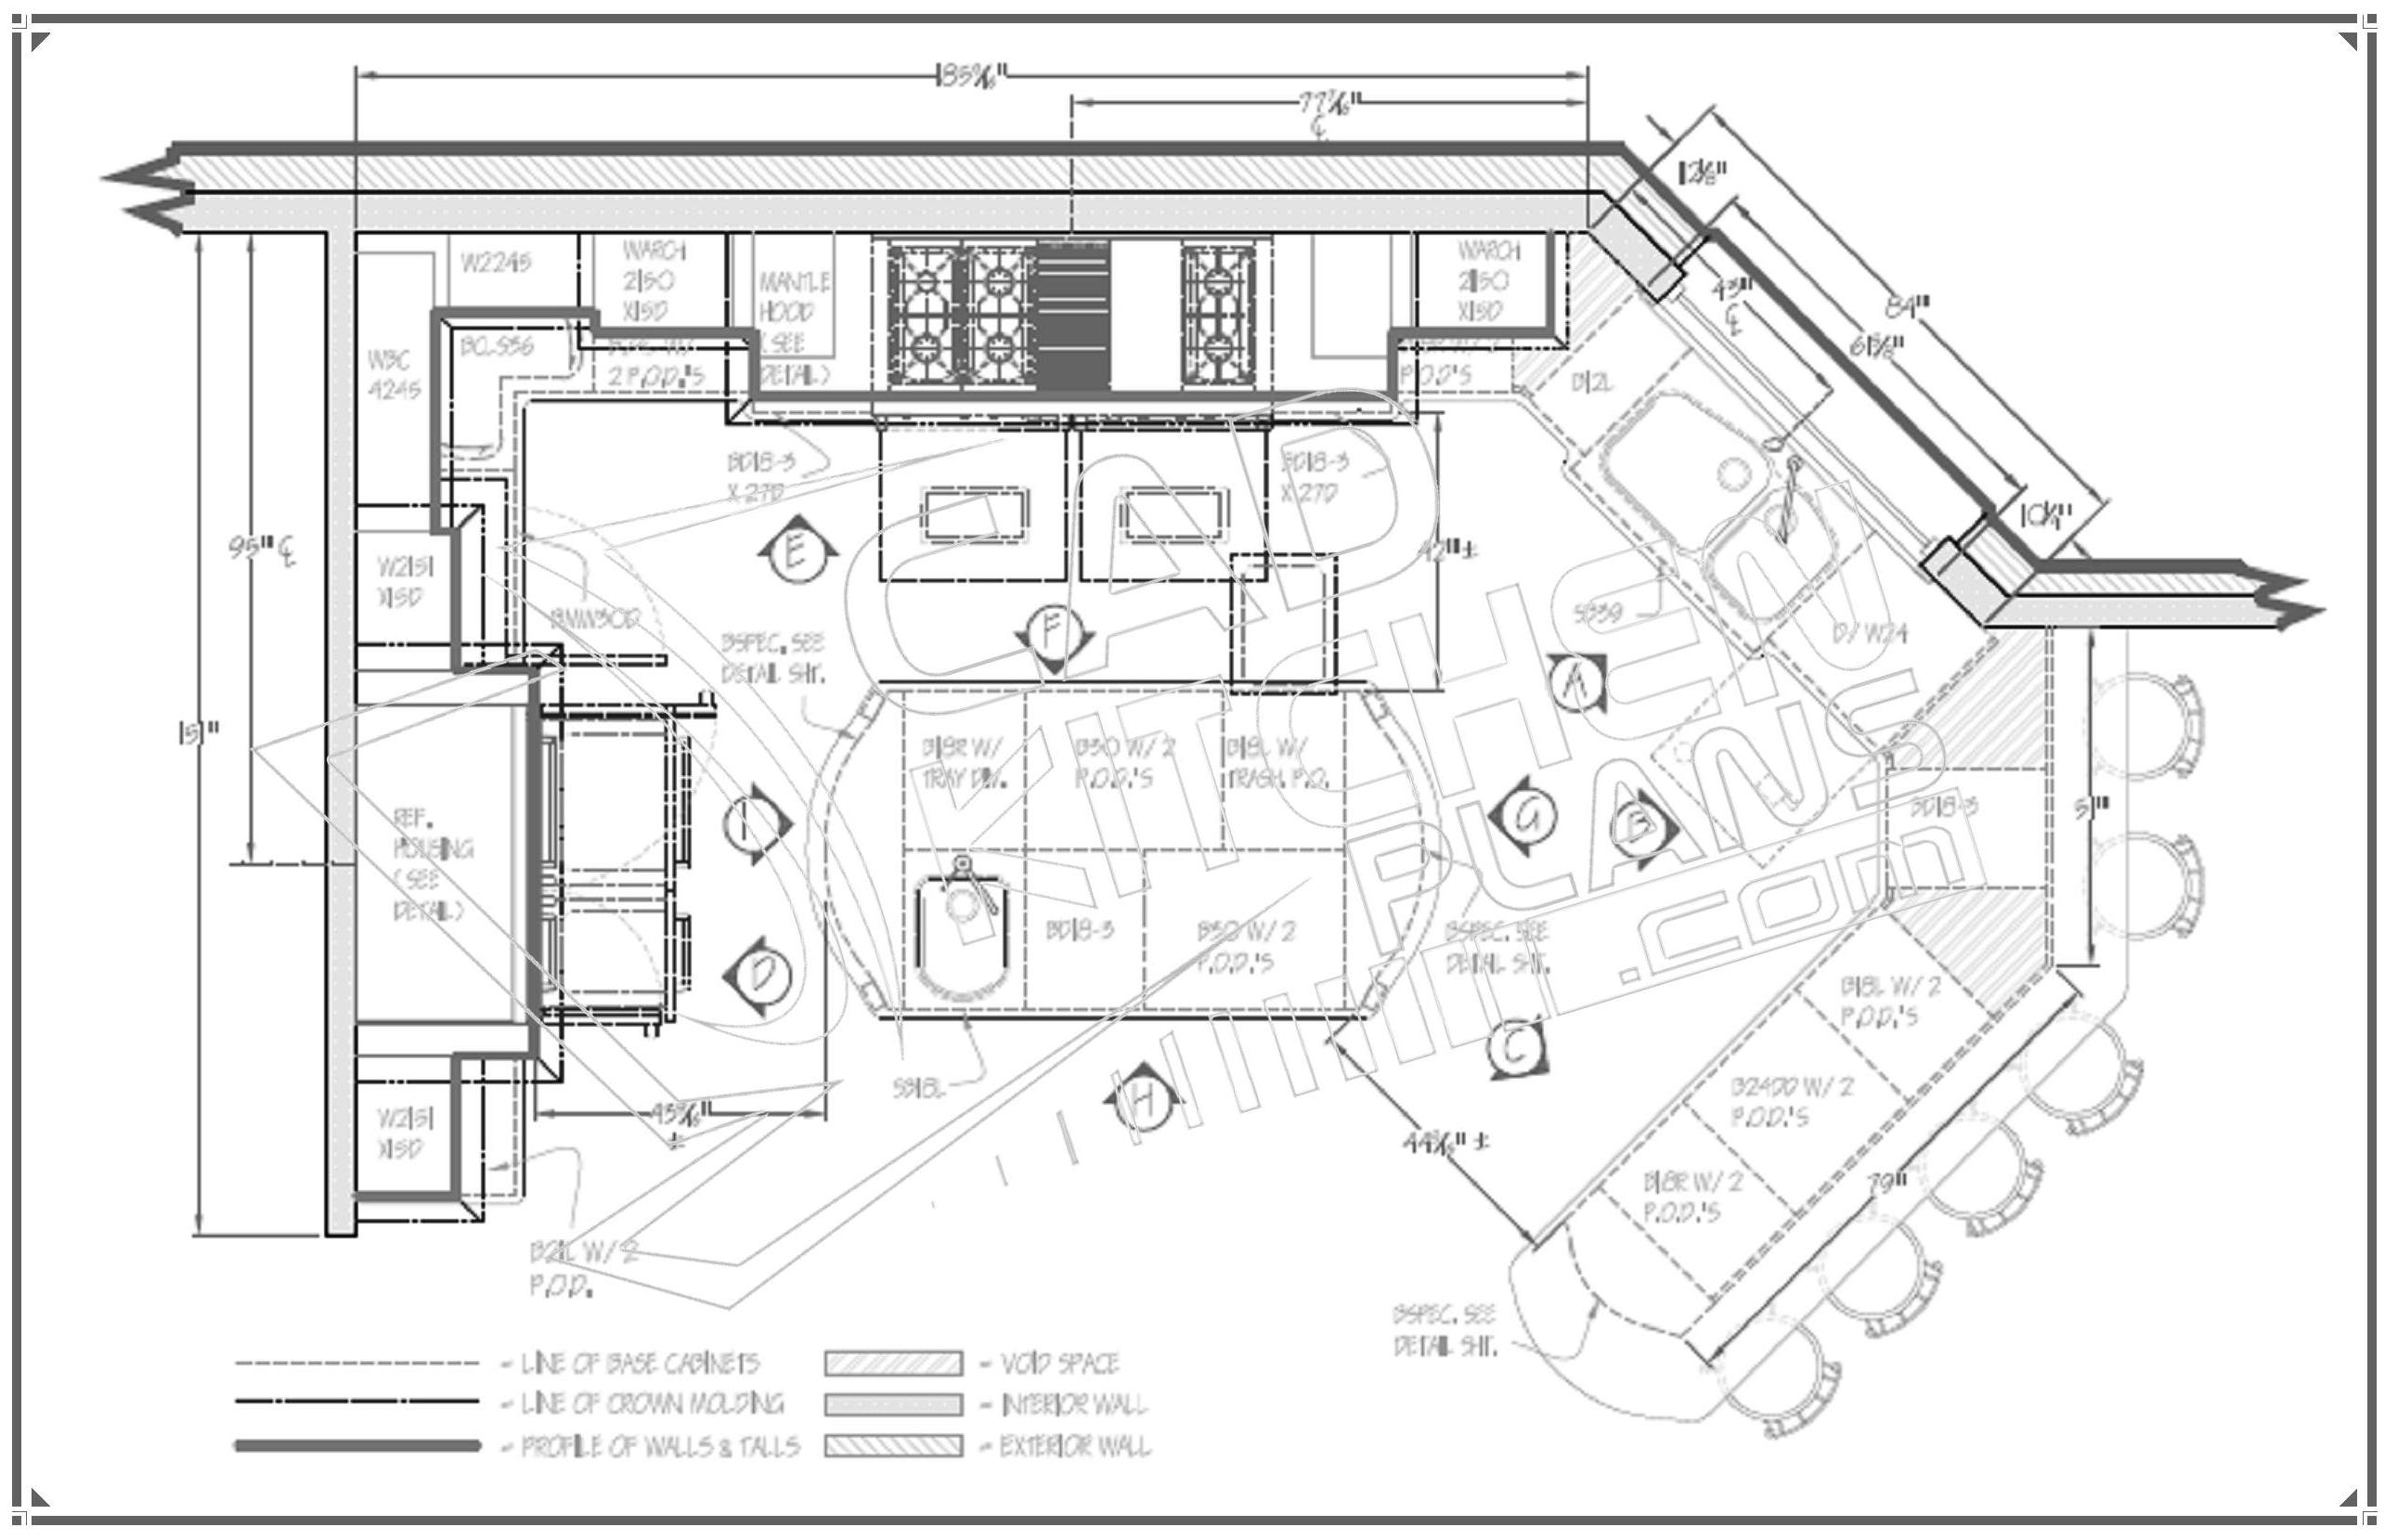 How i can find out the restaurant kitchen's floor plan layout